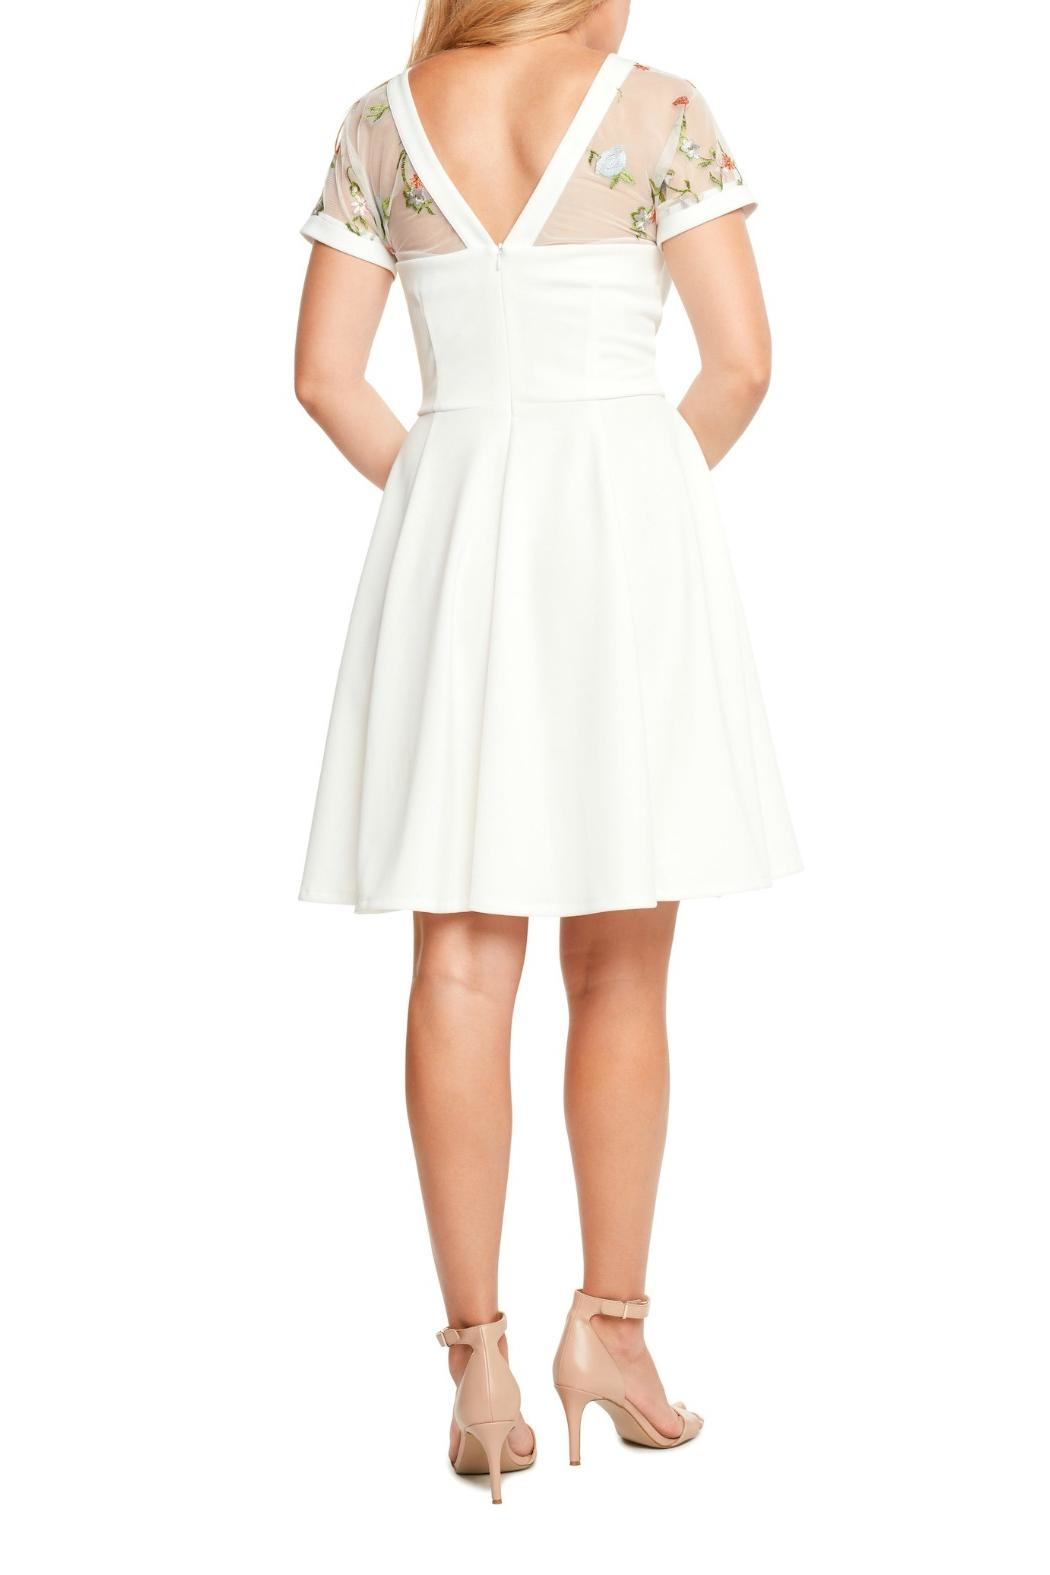 MHGS Embroidered Sweetheart Dress - Front Full Image